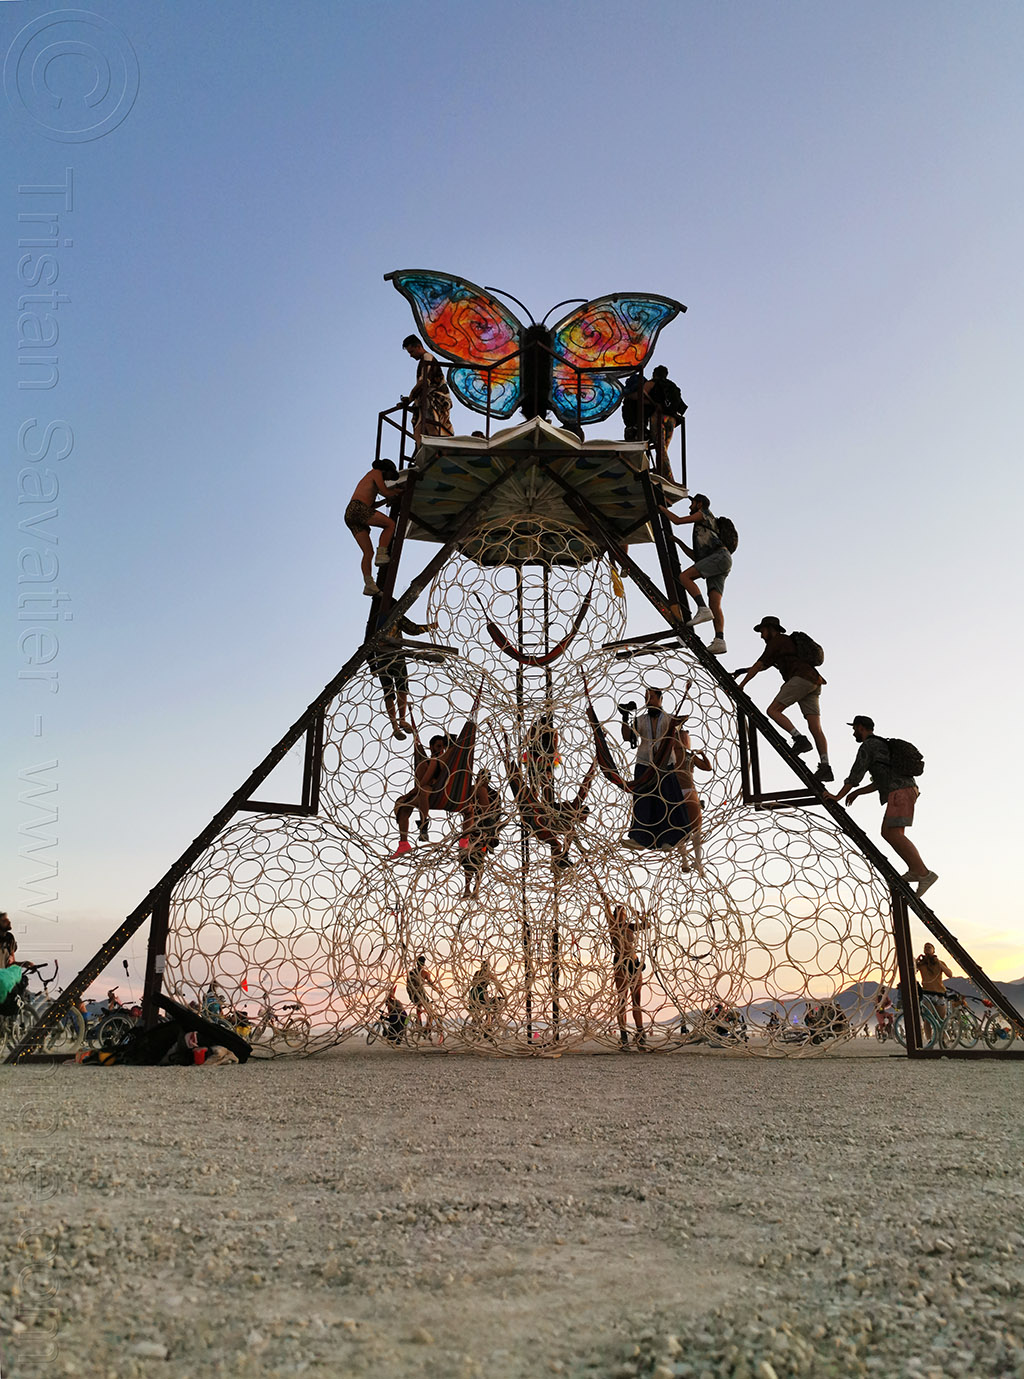 the butterfly - burning man 2019, art installation, burning man, swig miller, the phoenix and the butterfly